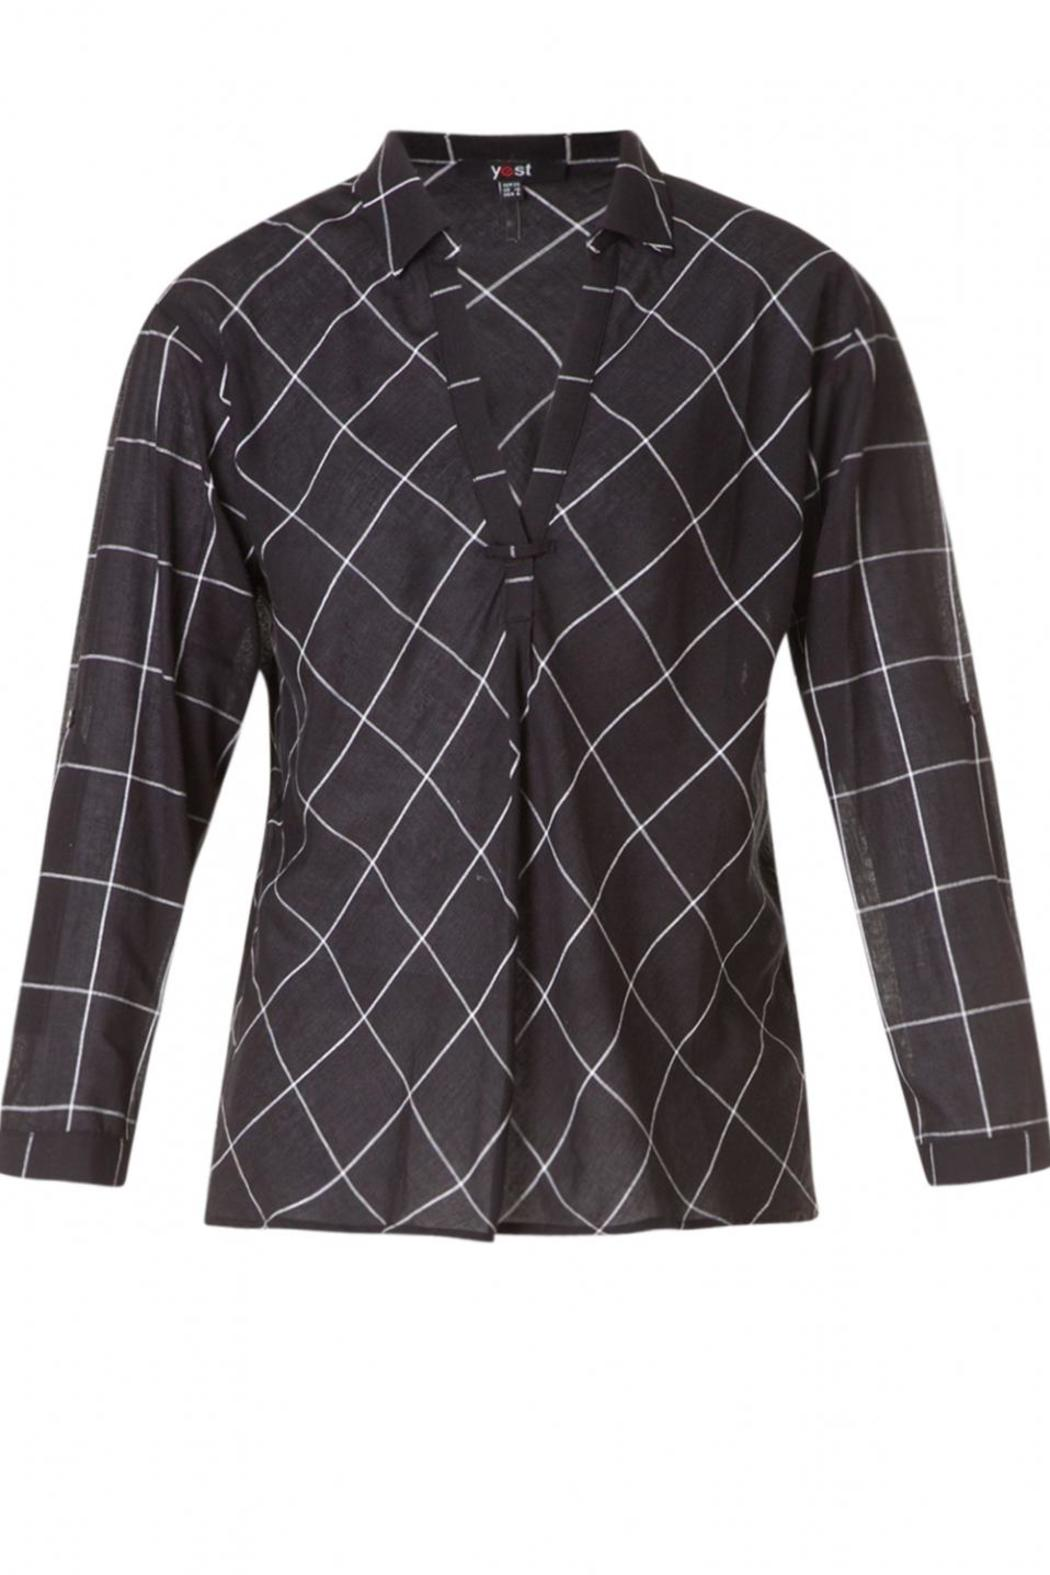 Yest Checkered Blouse - Back Cropped Image